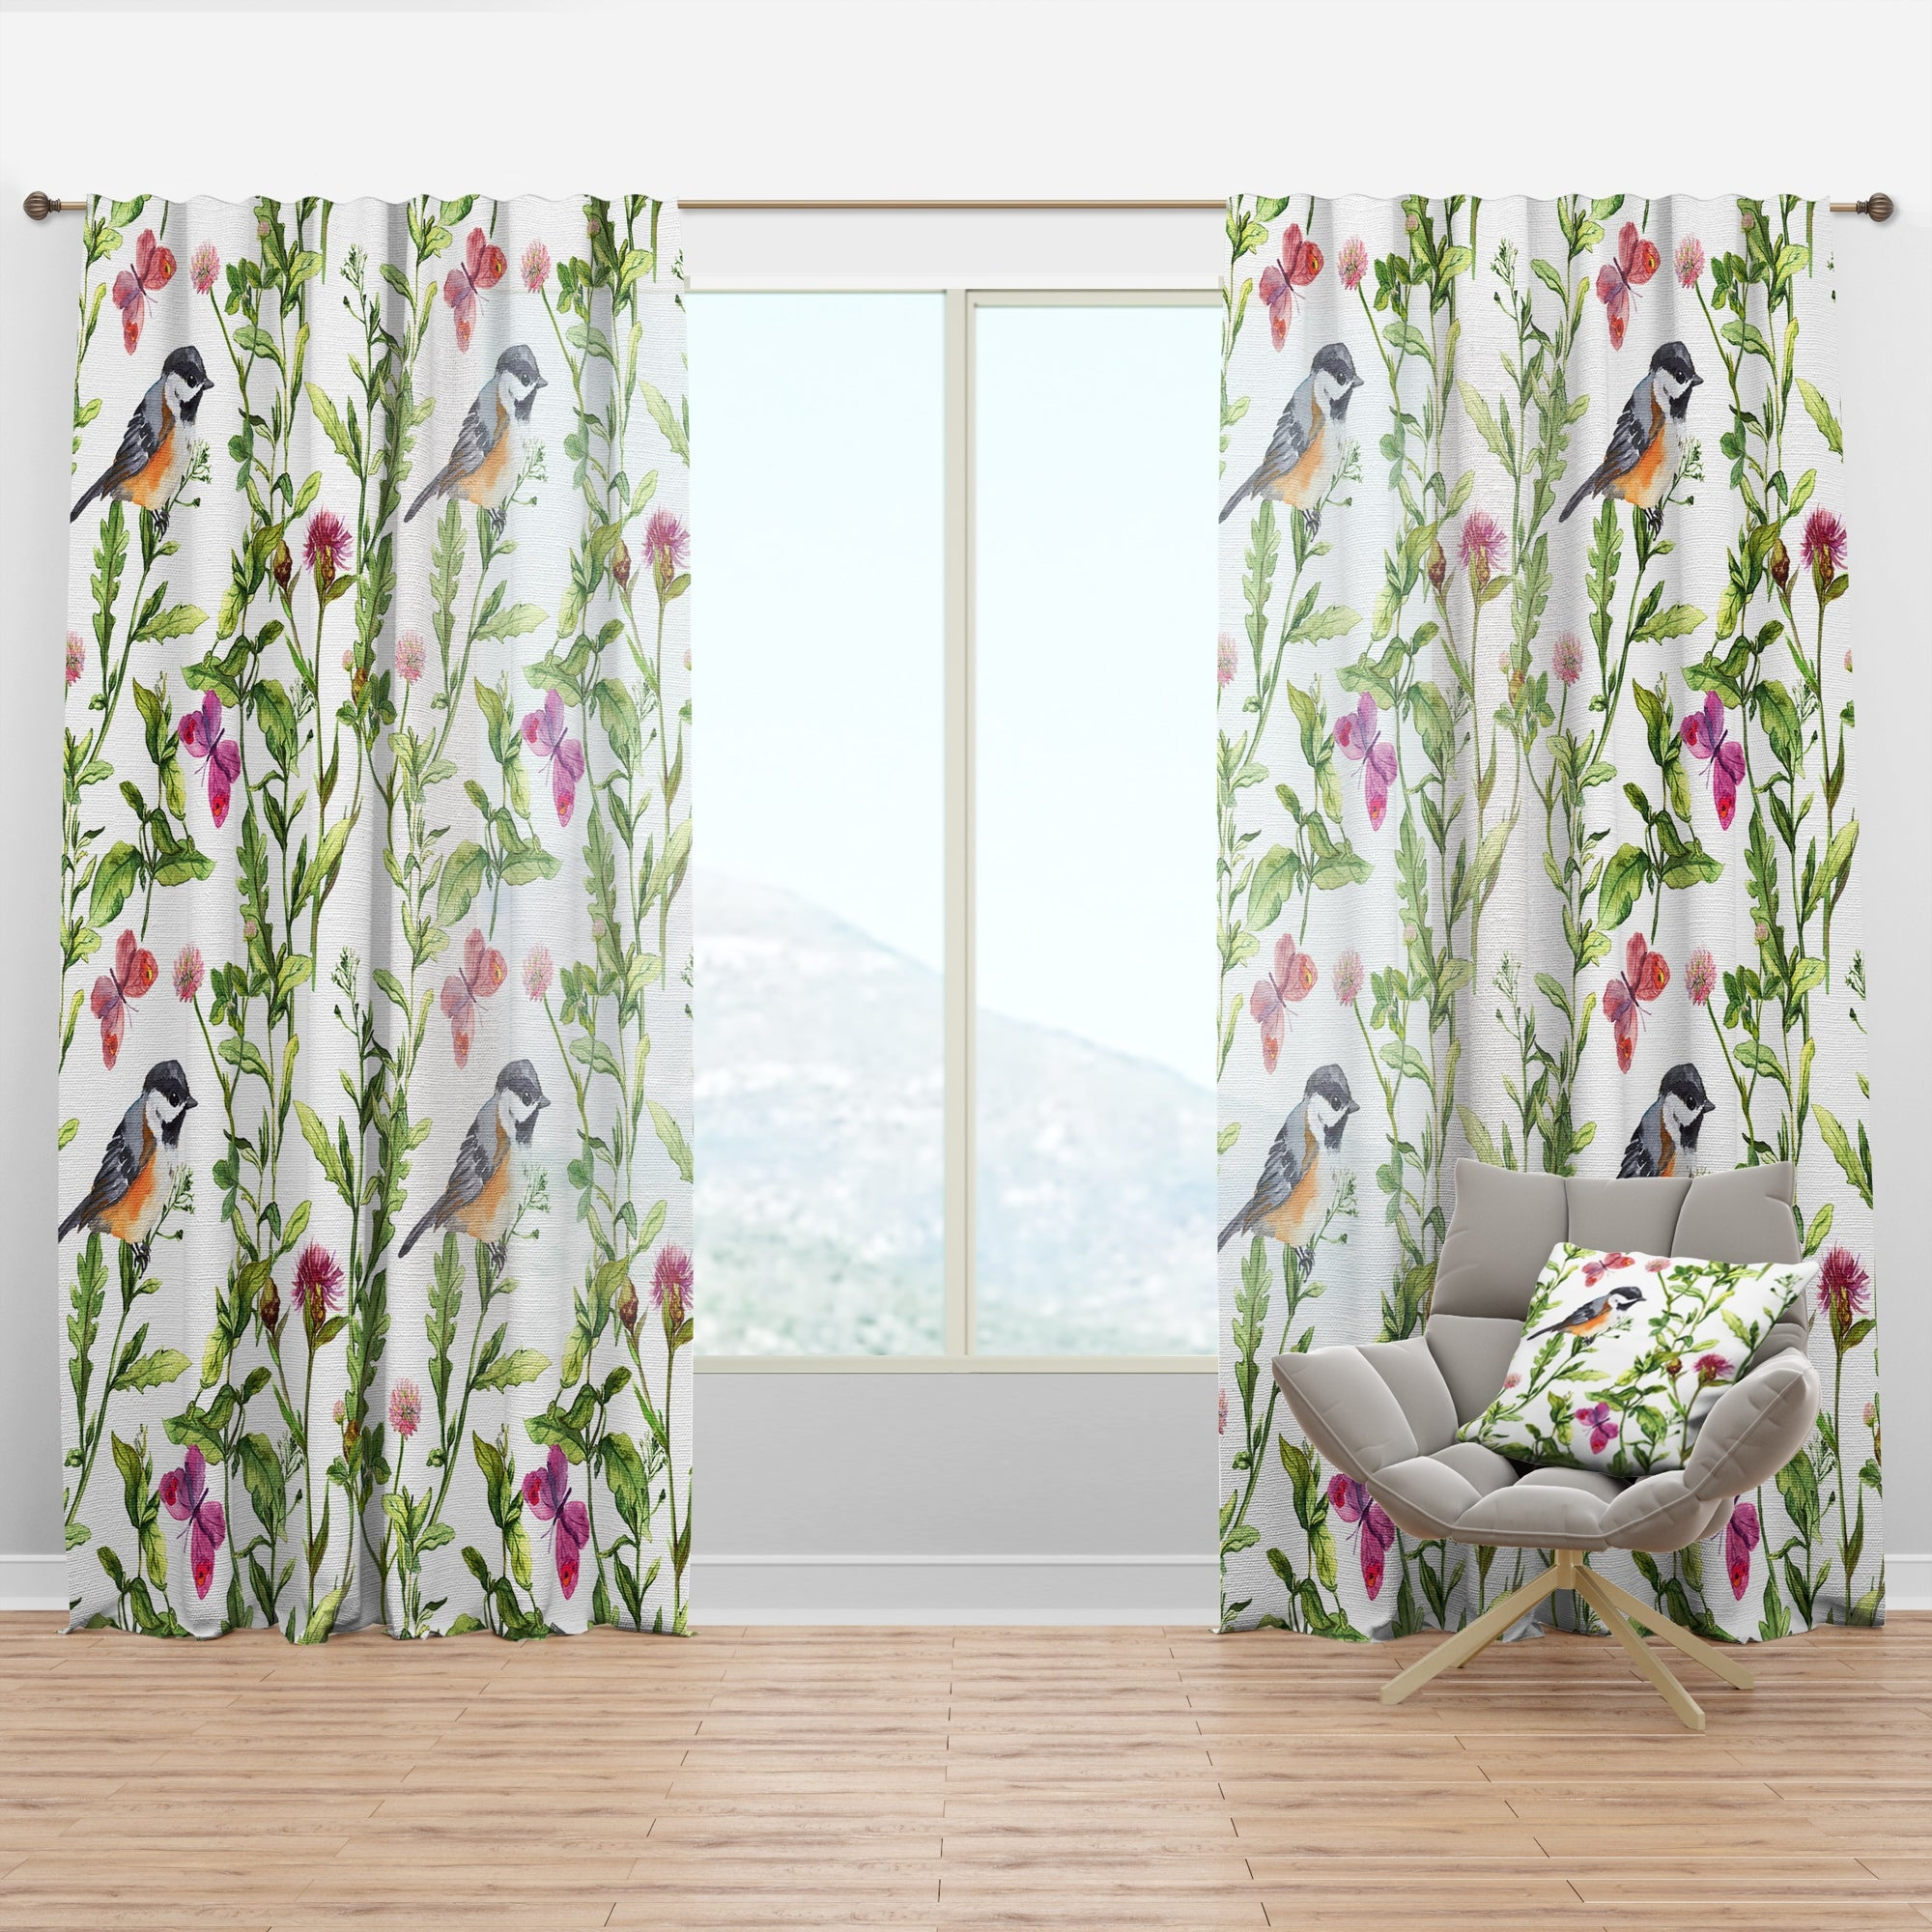 Designart Meadow With Butterflies Birds And Herbs Floral Curtain Panel On Sale Overstock 29625577